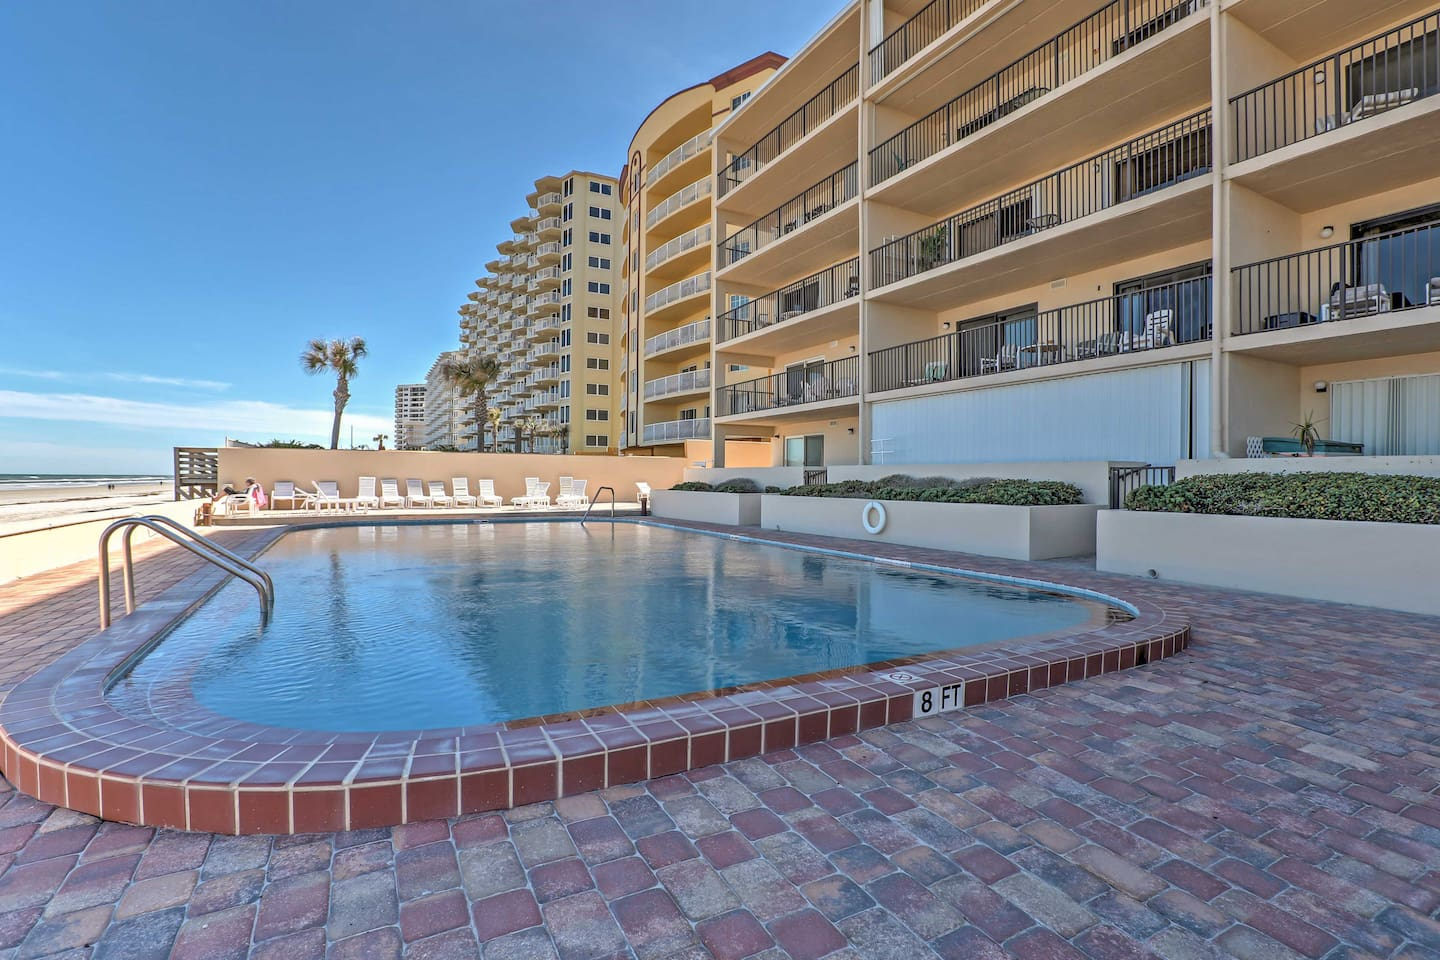 Escape to the white sandy beaches of Daytona Beach Shores when you stay at this beachfront 2-bedroom, 2-bathroom vacation rental condo!